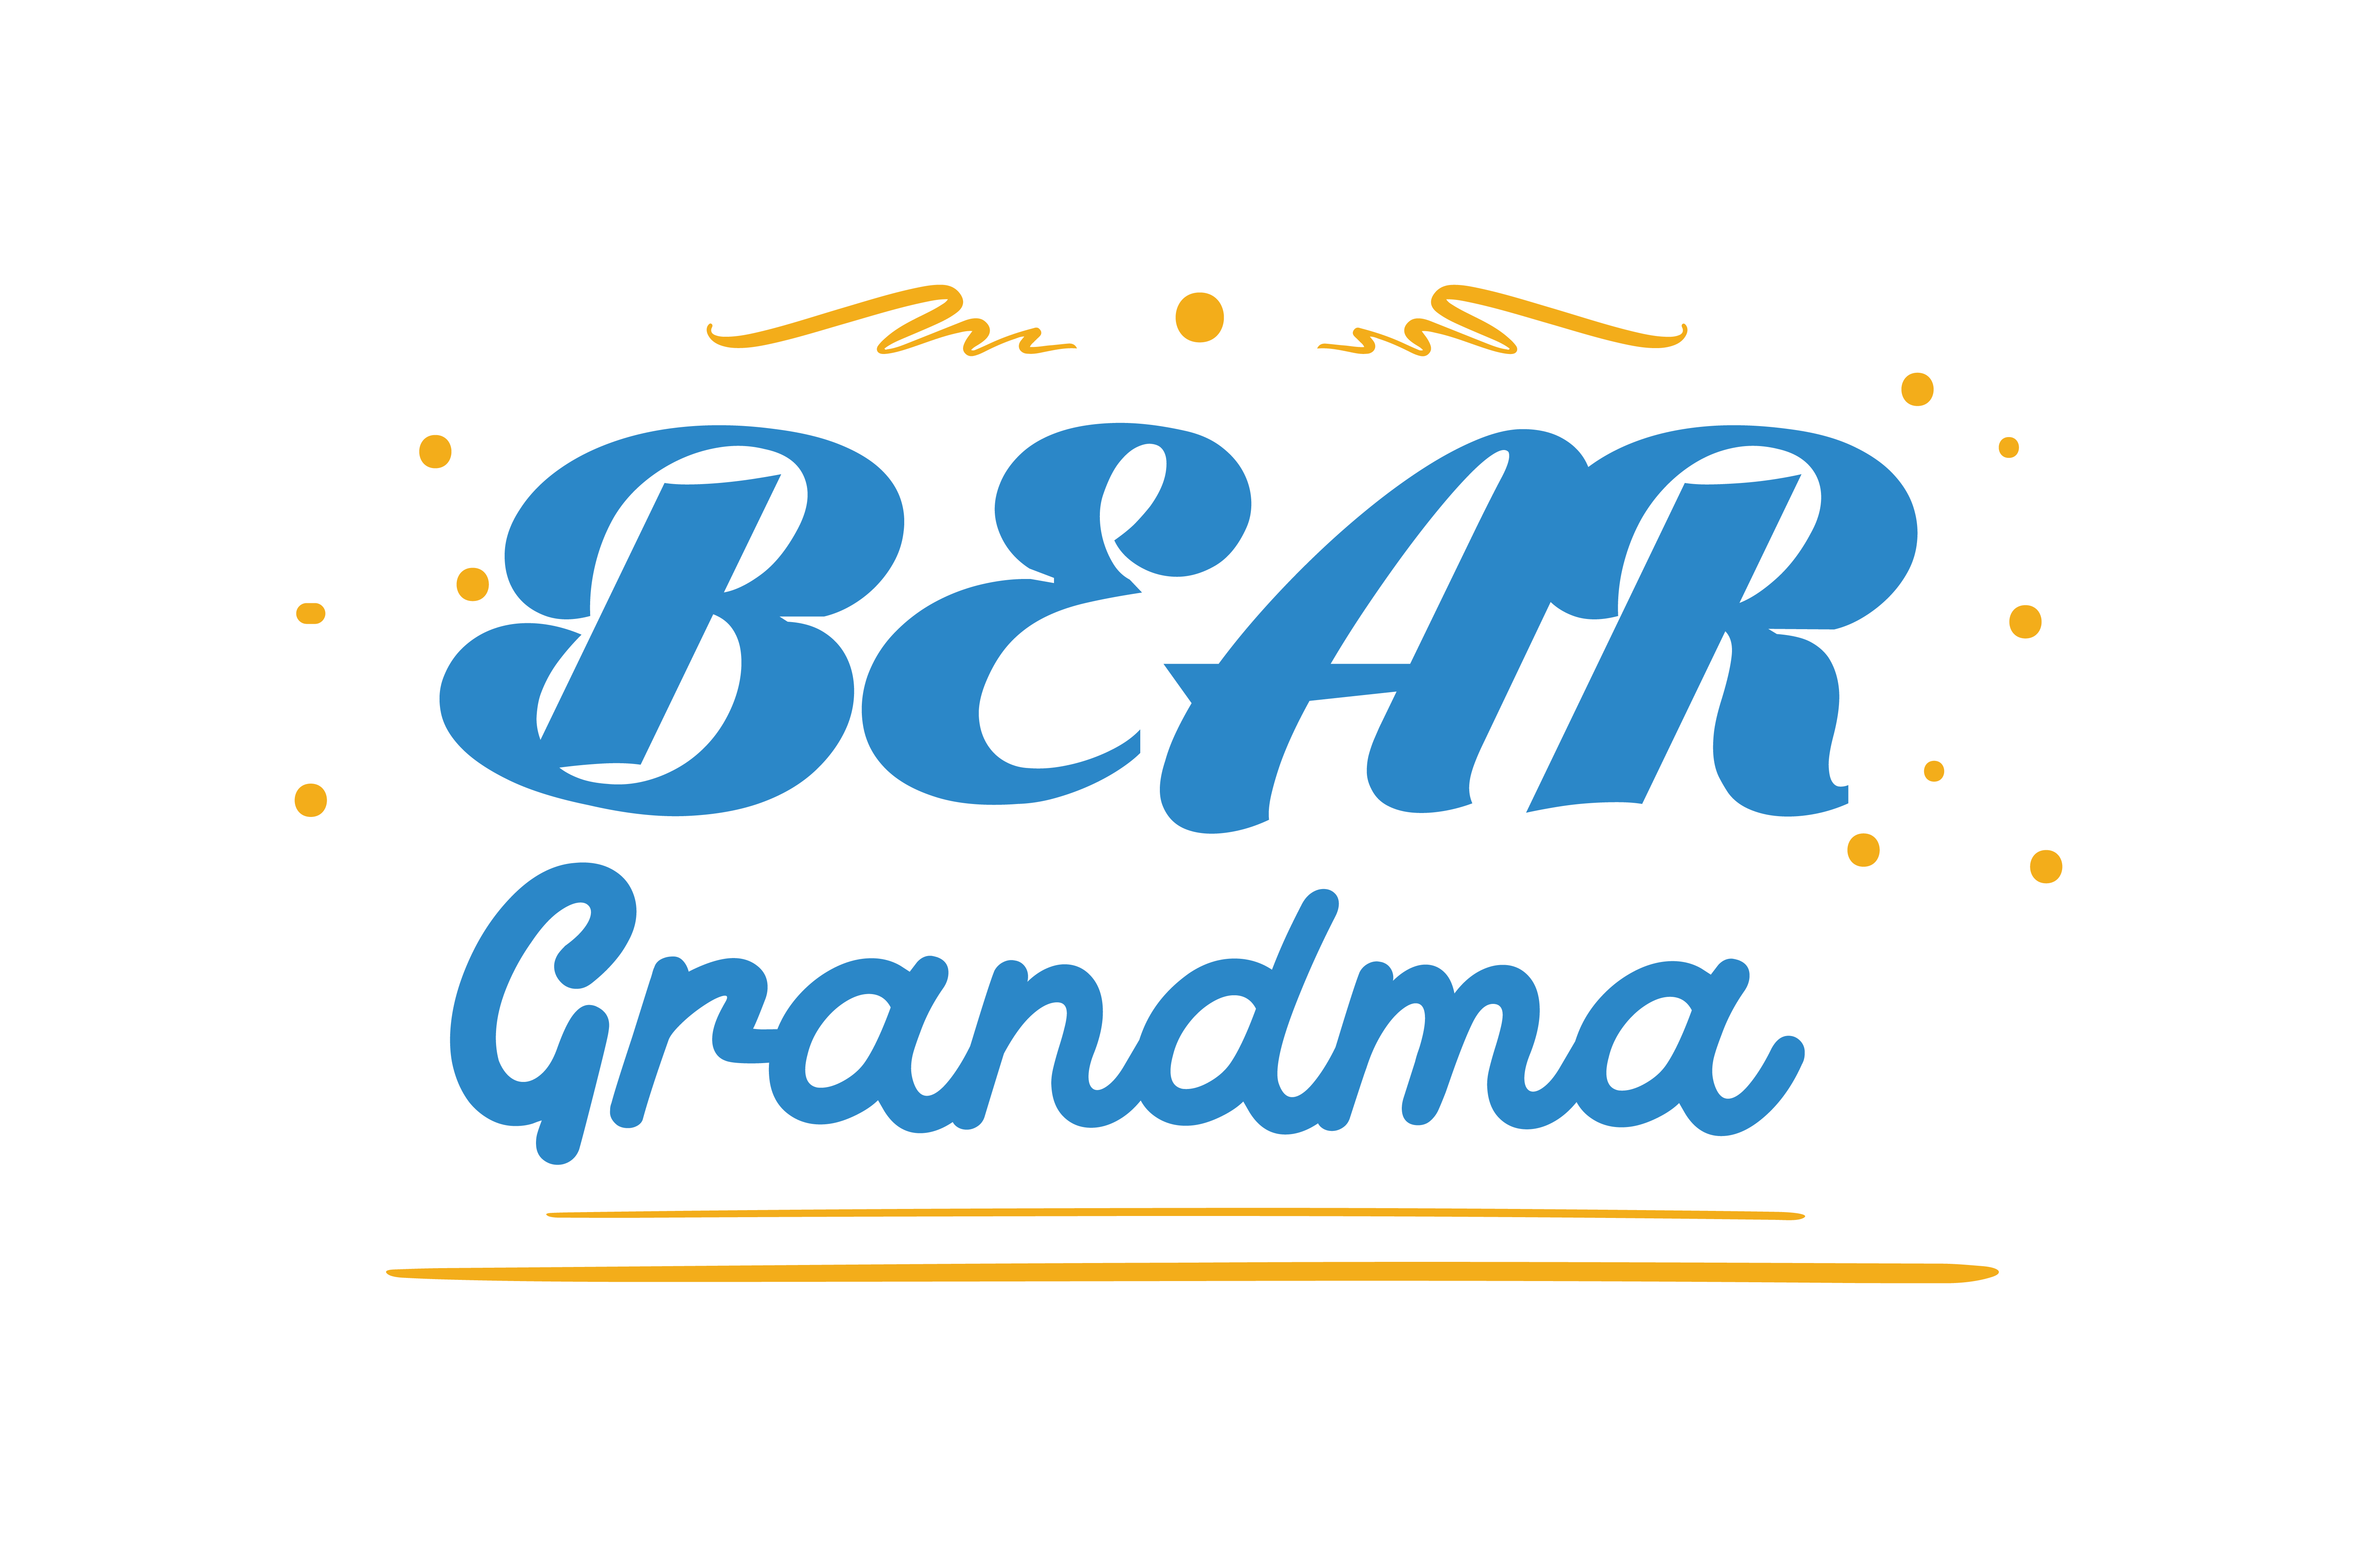 Download Free Grandma Bear Quote Svg Cut Graphic By Thelucky Creative Fabrica for Cricut Explore, Silhouette and other cutting machines.